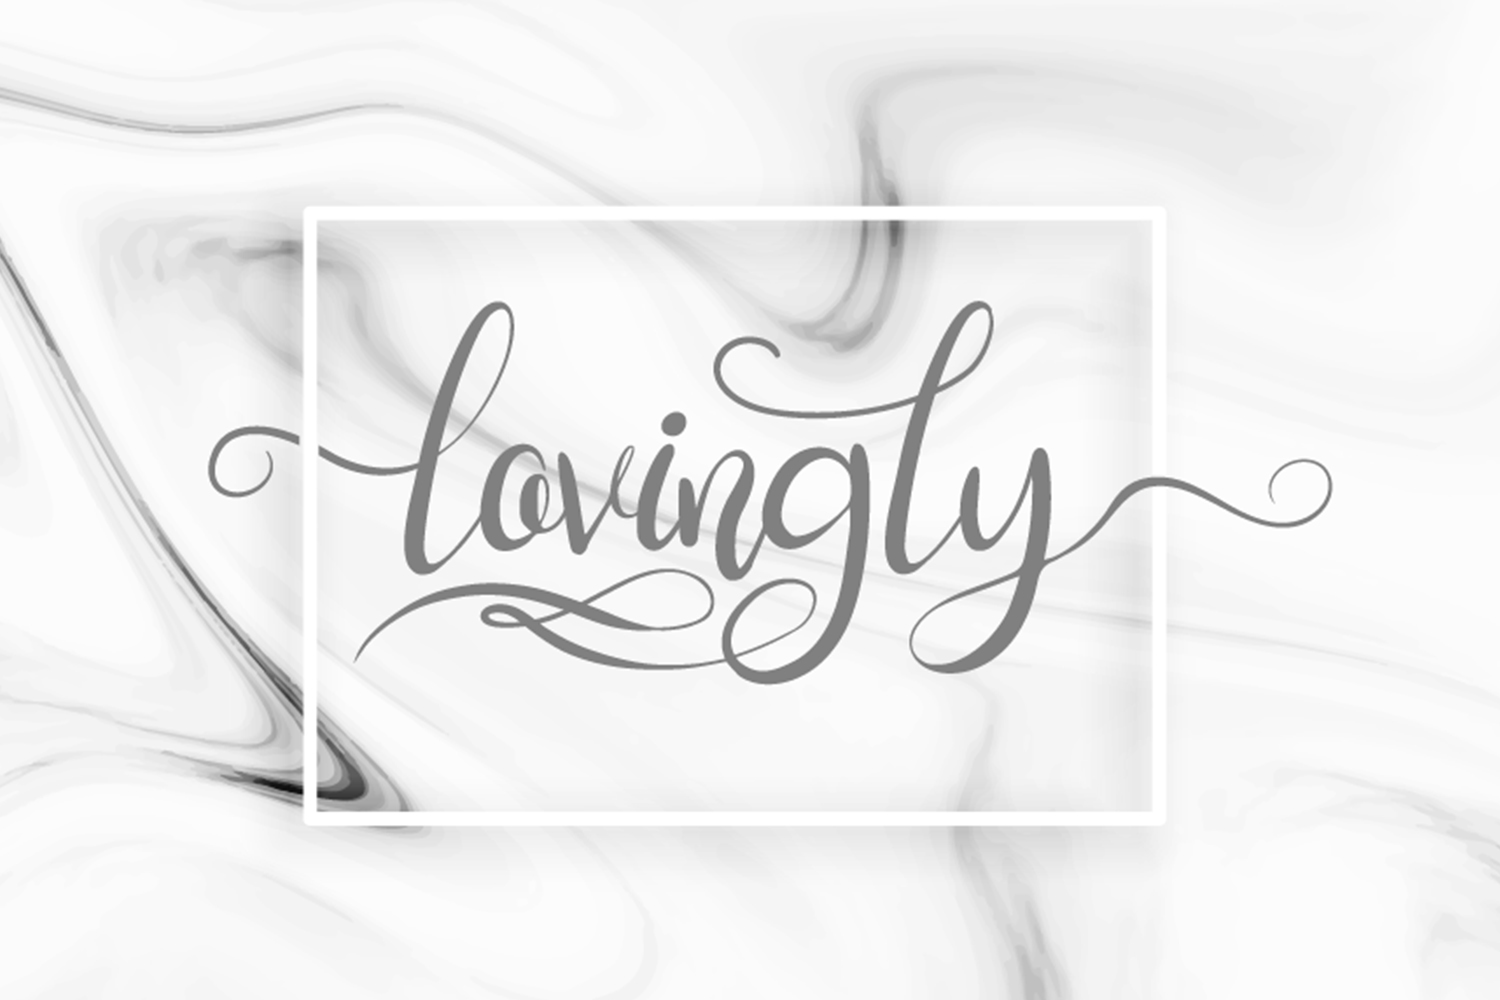 Sweengly - Sweet Script Font example image 4